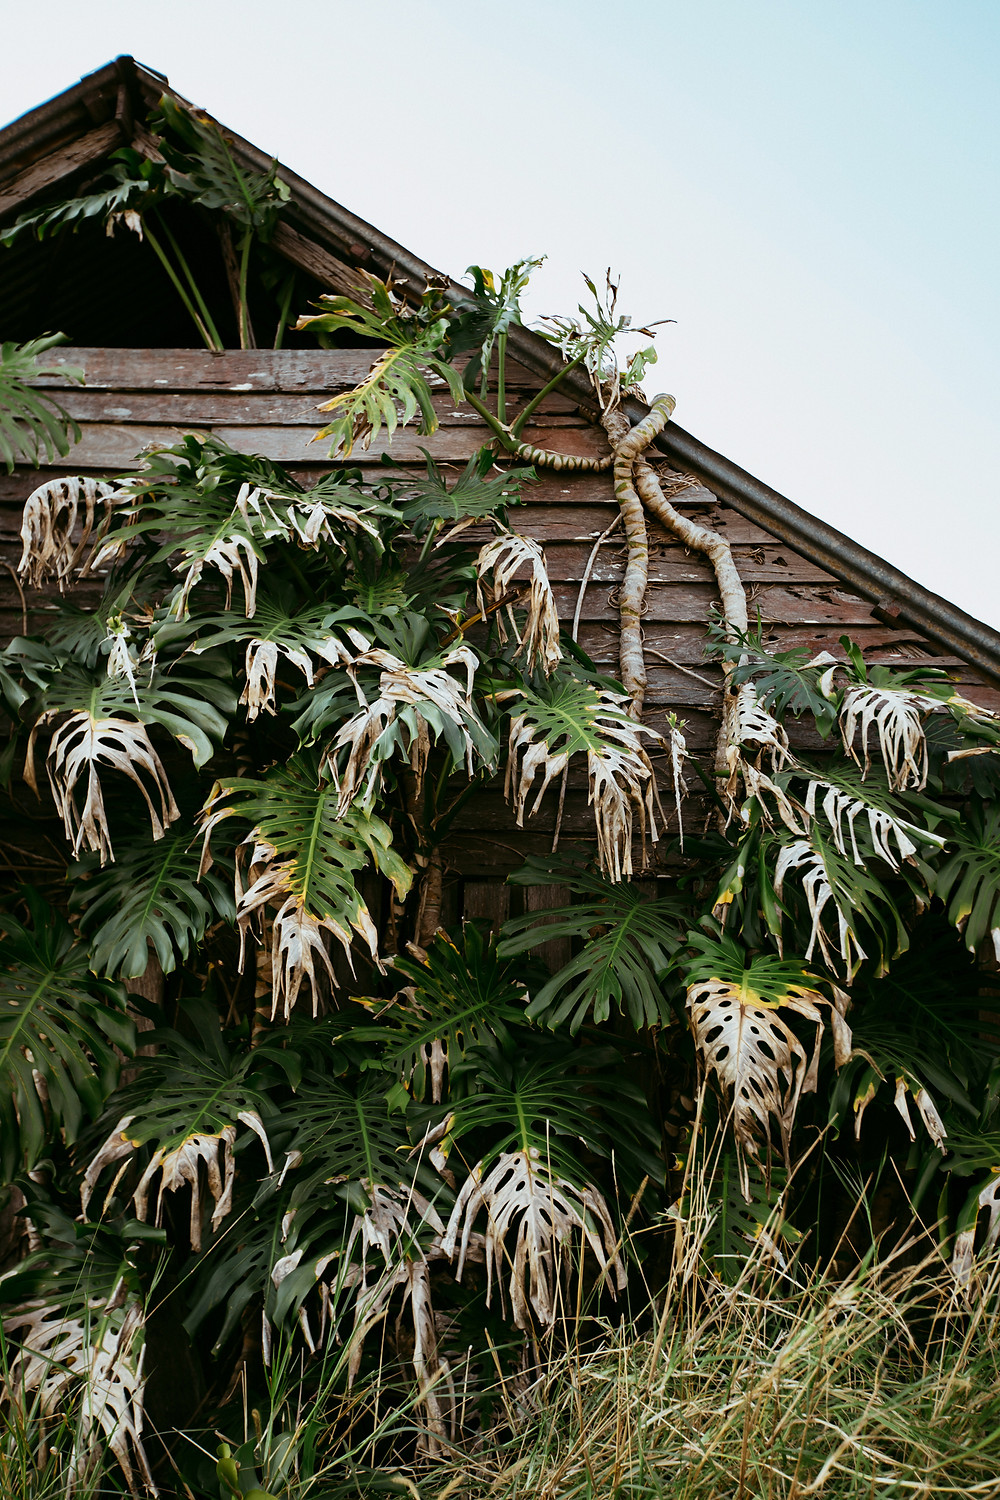 A large monstera plant is taking over what remains of a shed somewhere in NSW.